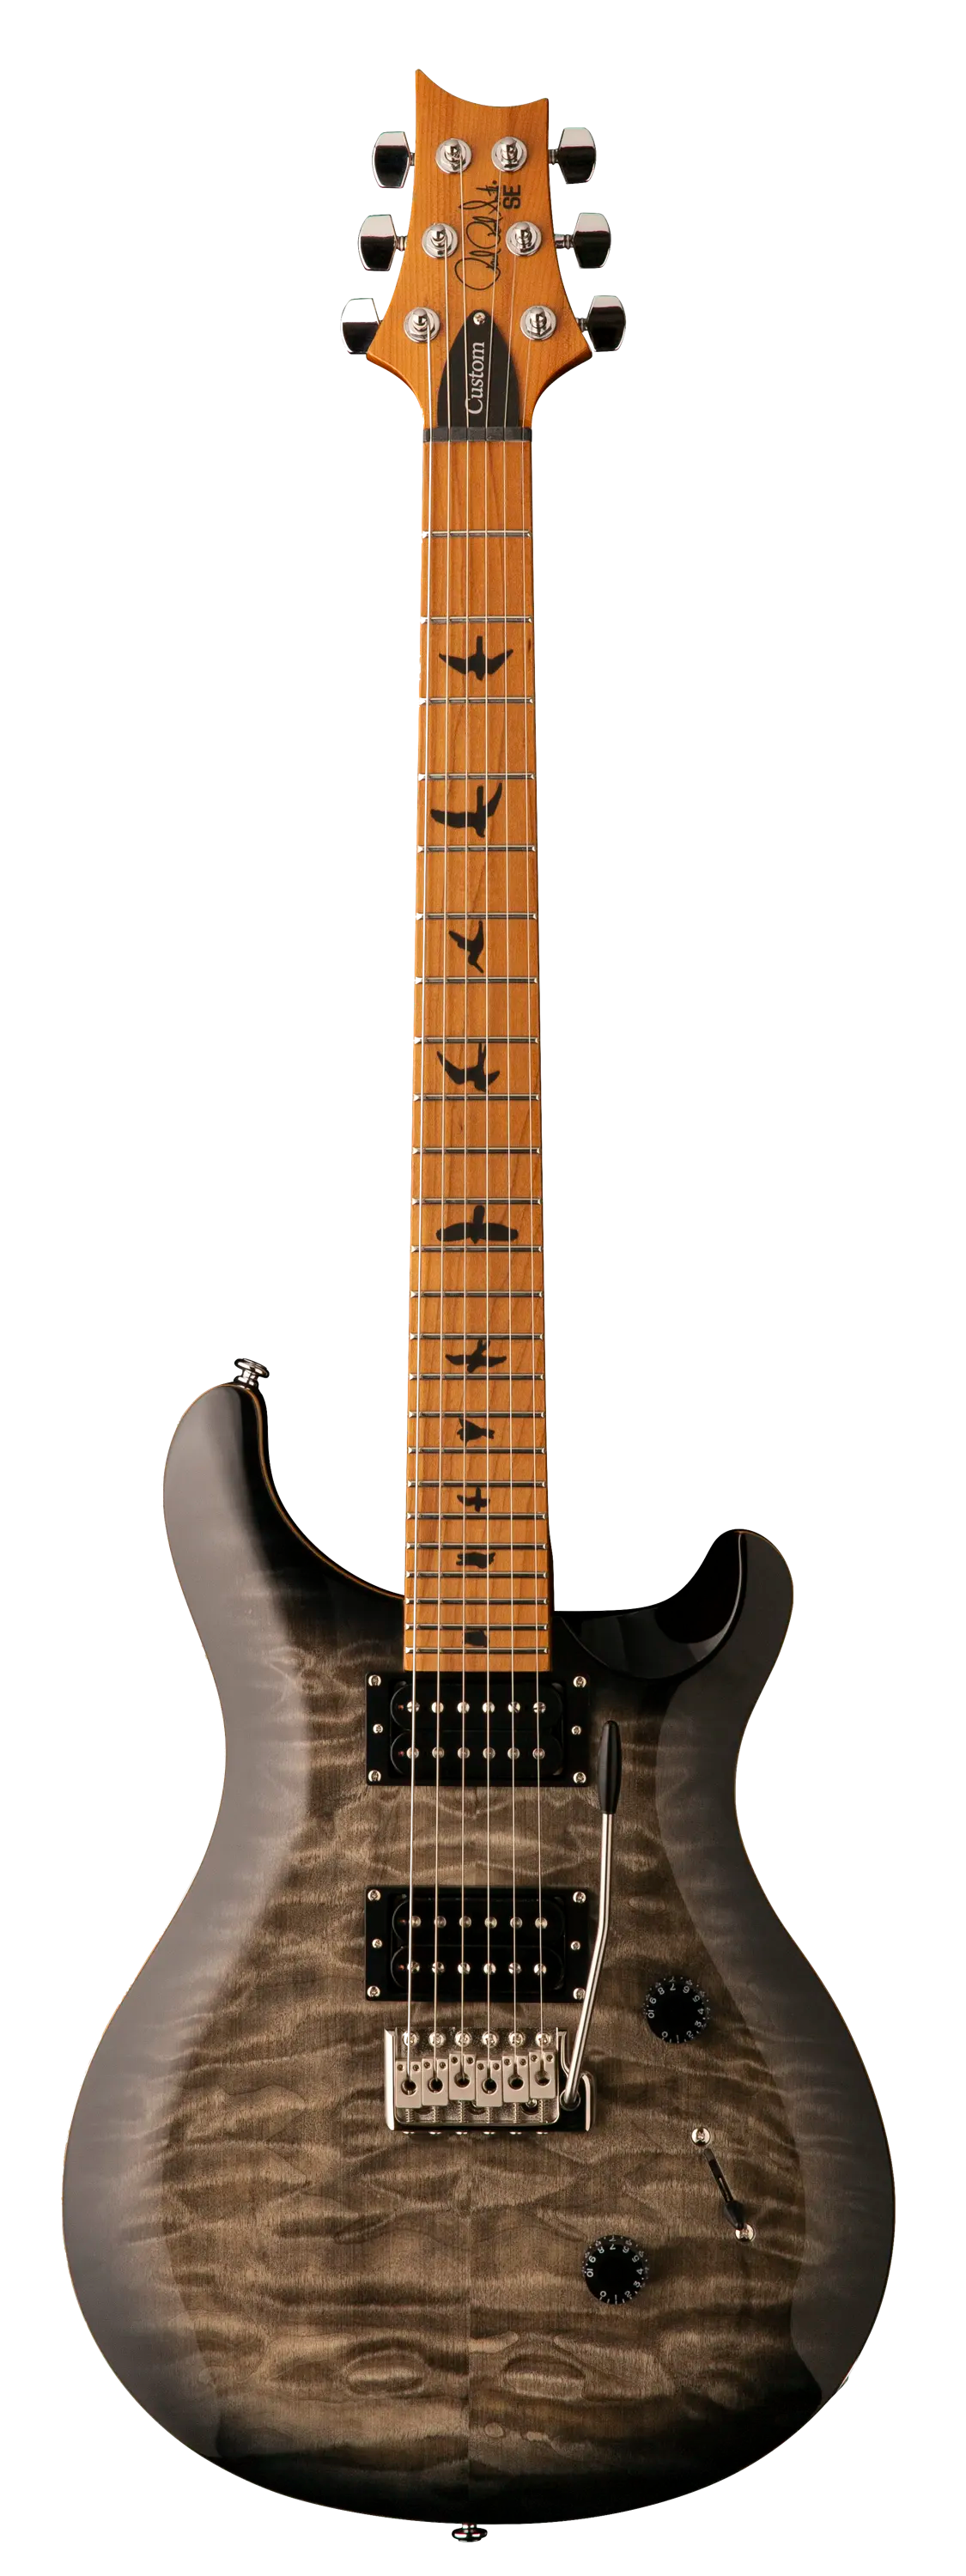 PRS SE ROASTED MAPLE SPECIAL PRE LAUNCH PRICE - HIENDGUITAR charcoal burst charcoal burst HIENDGUITAR.COM GUITAR